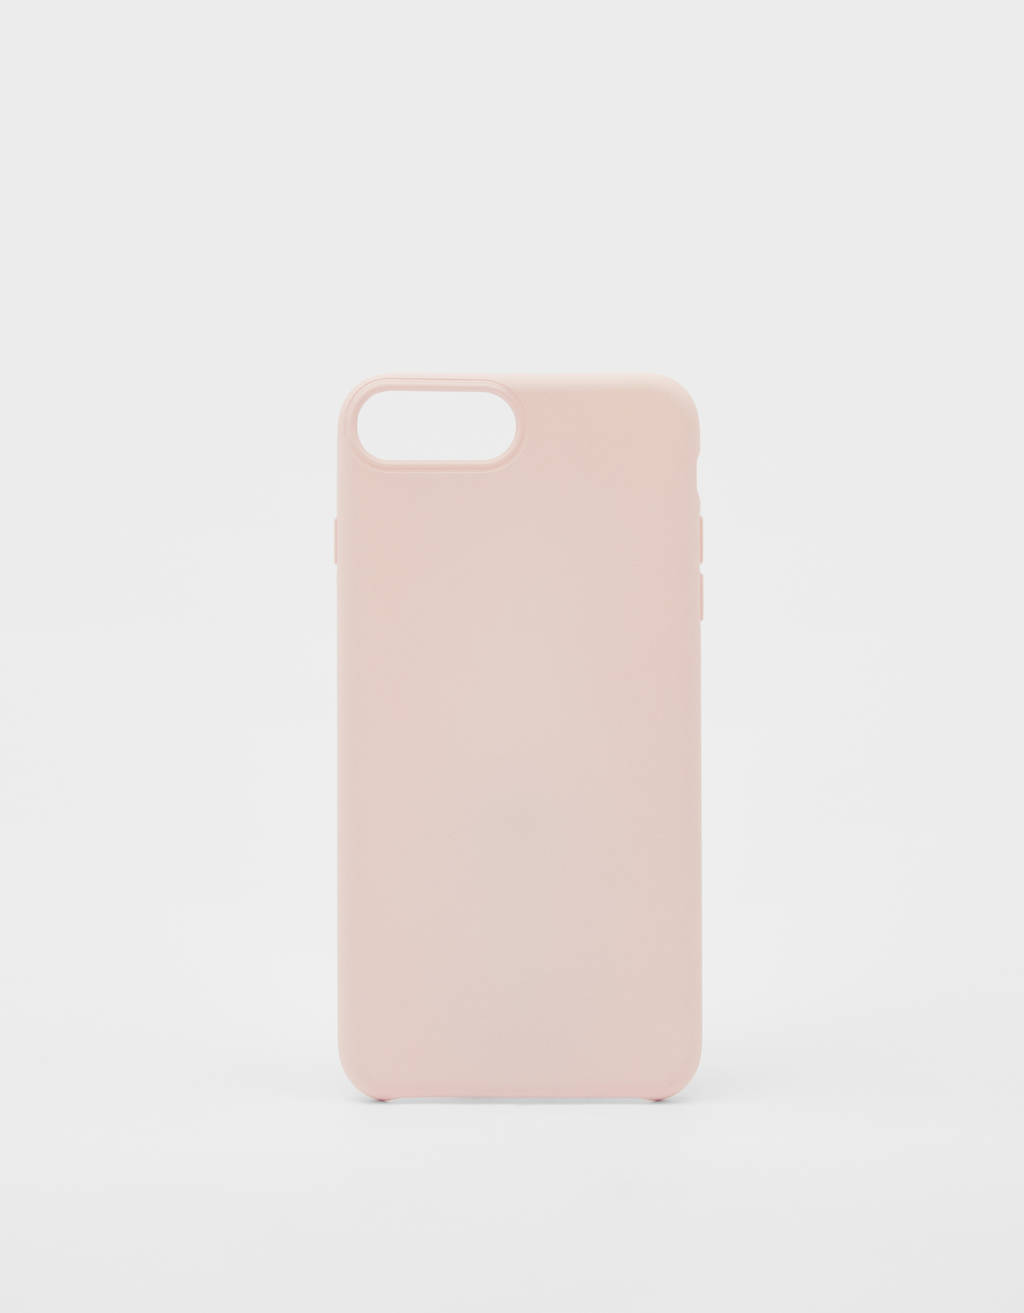 iPhone Cases - Accessories - COLLECTION - WOMEN - Bershka Turkey